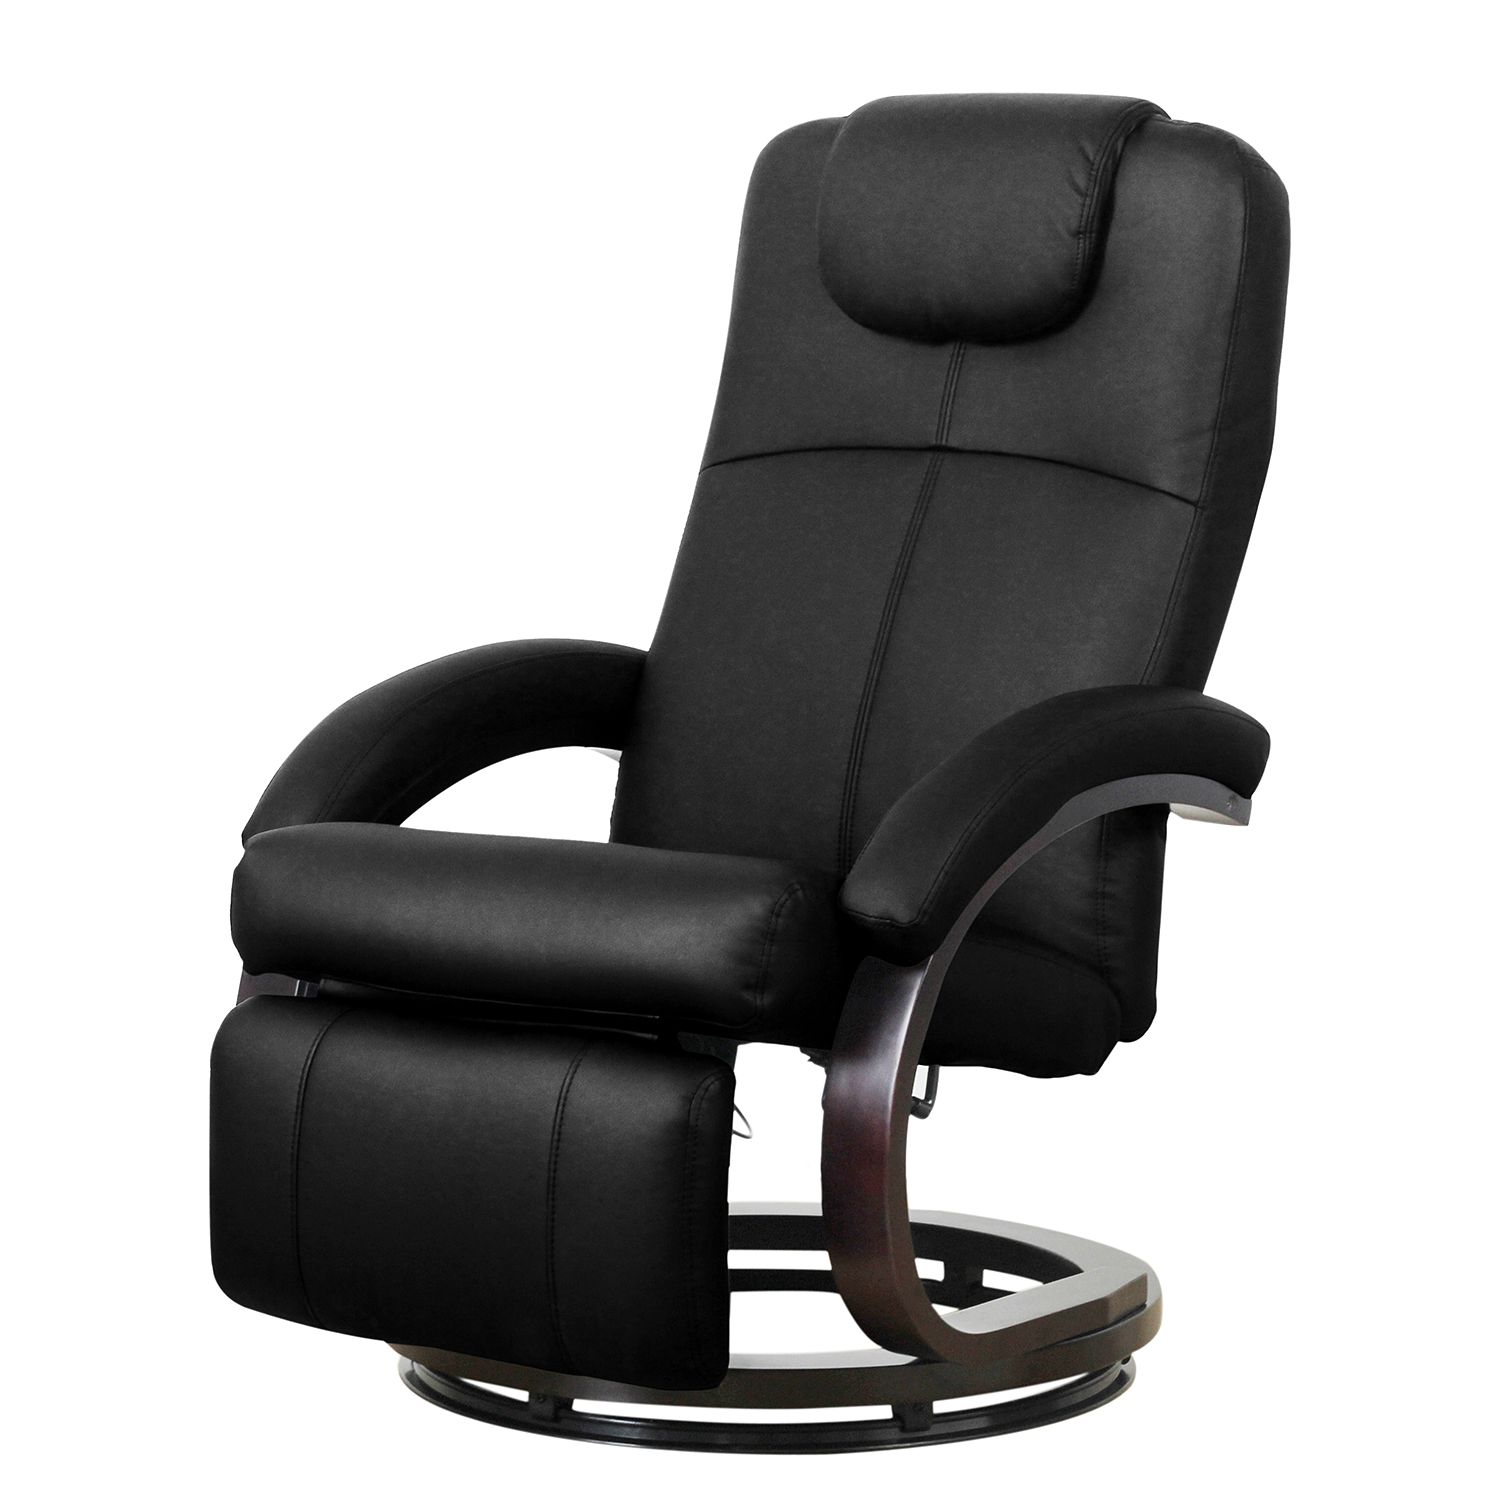 Fauteuil relax Orania